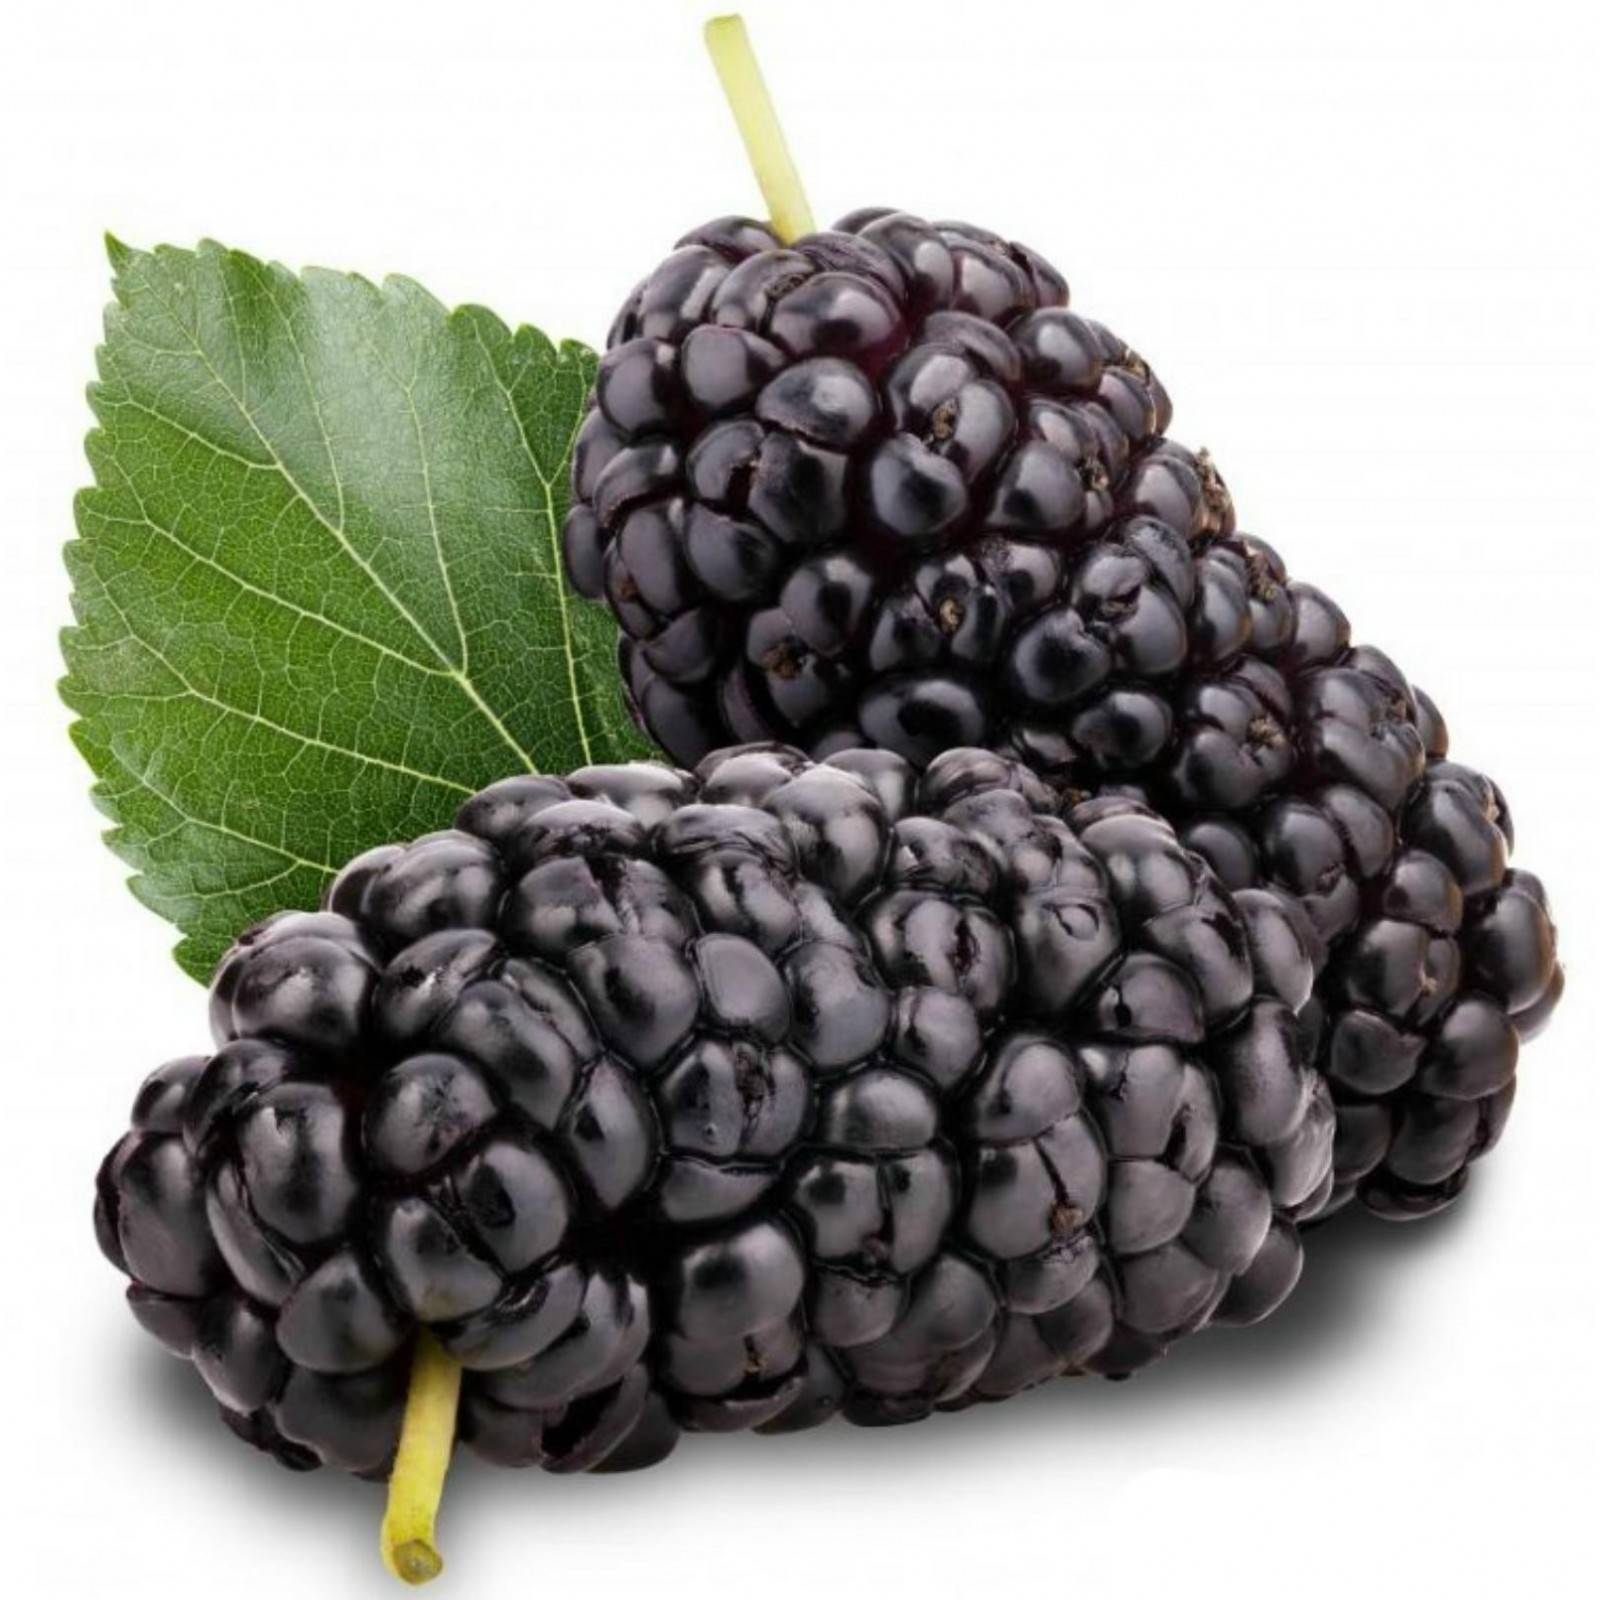 4 Side Effects Of Mulberry Worth Knowing